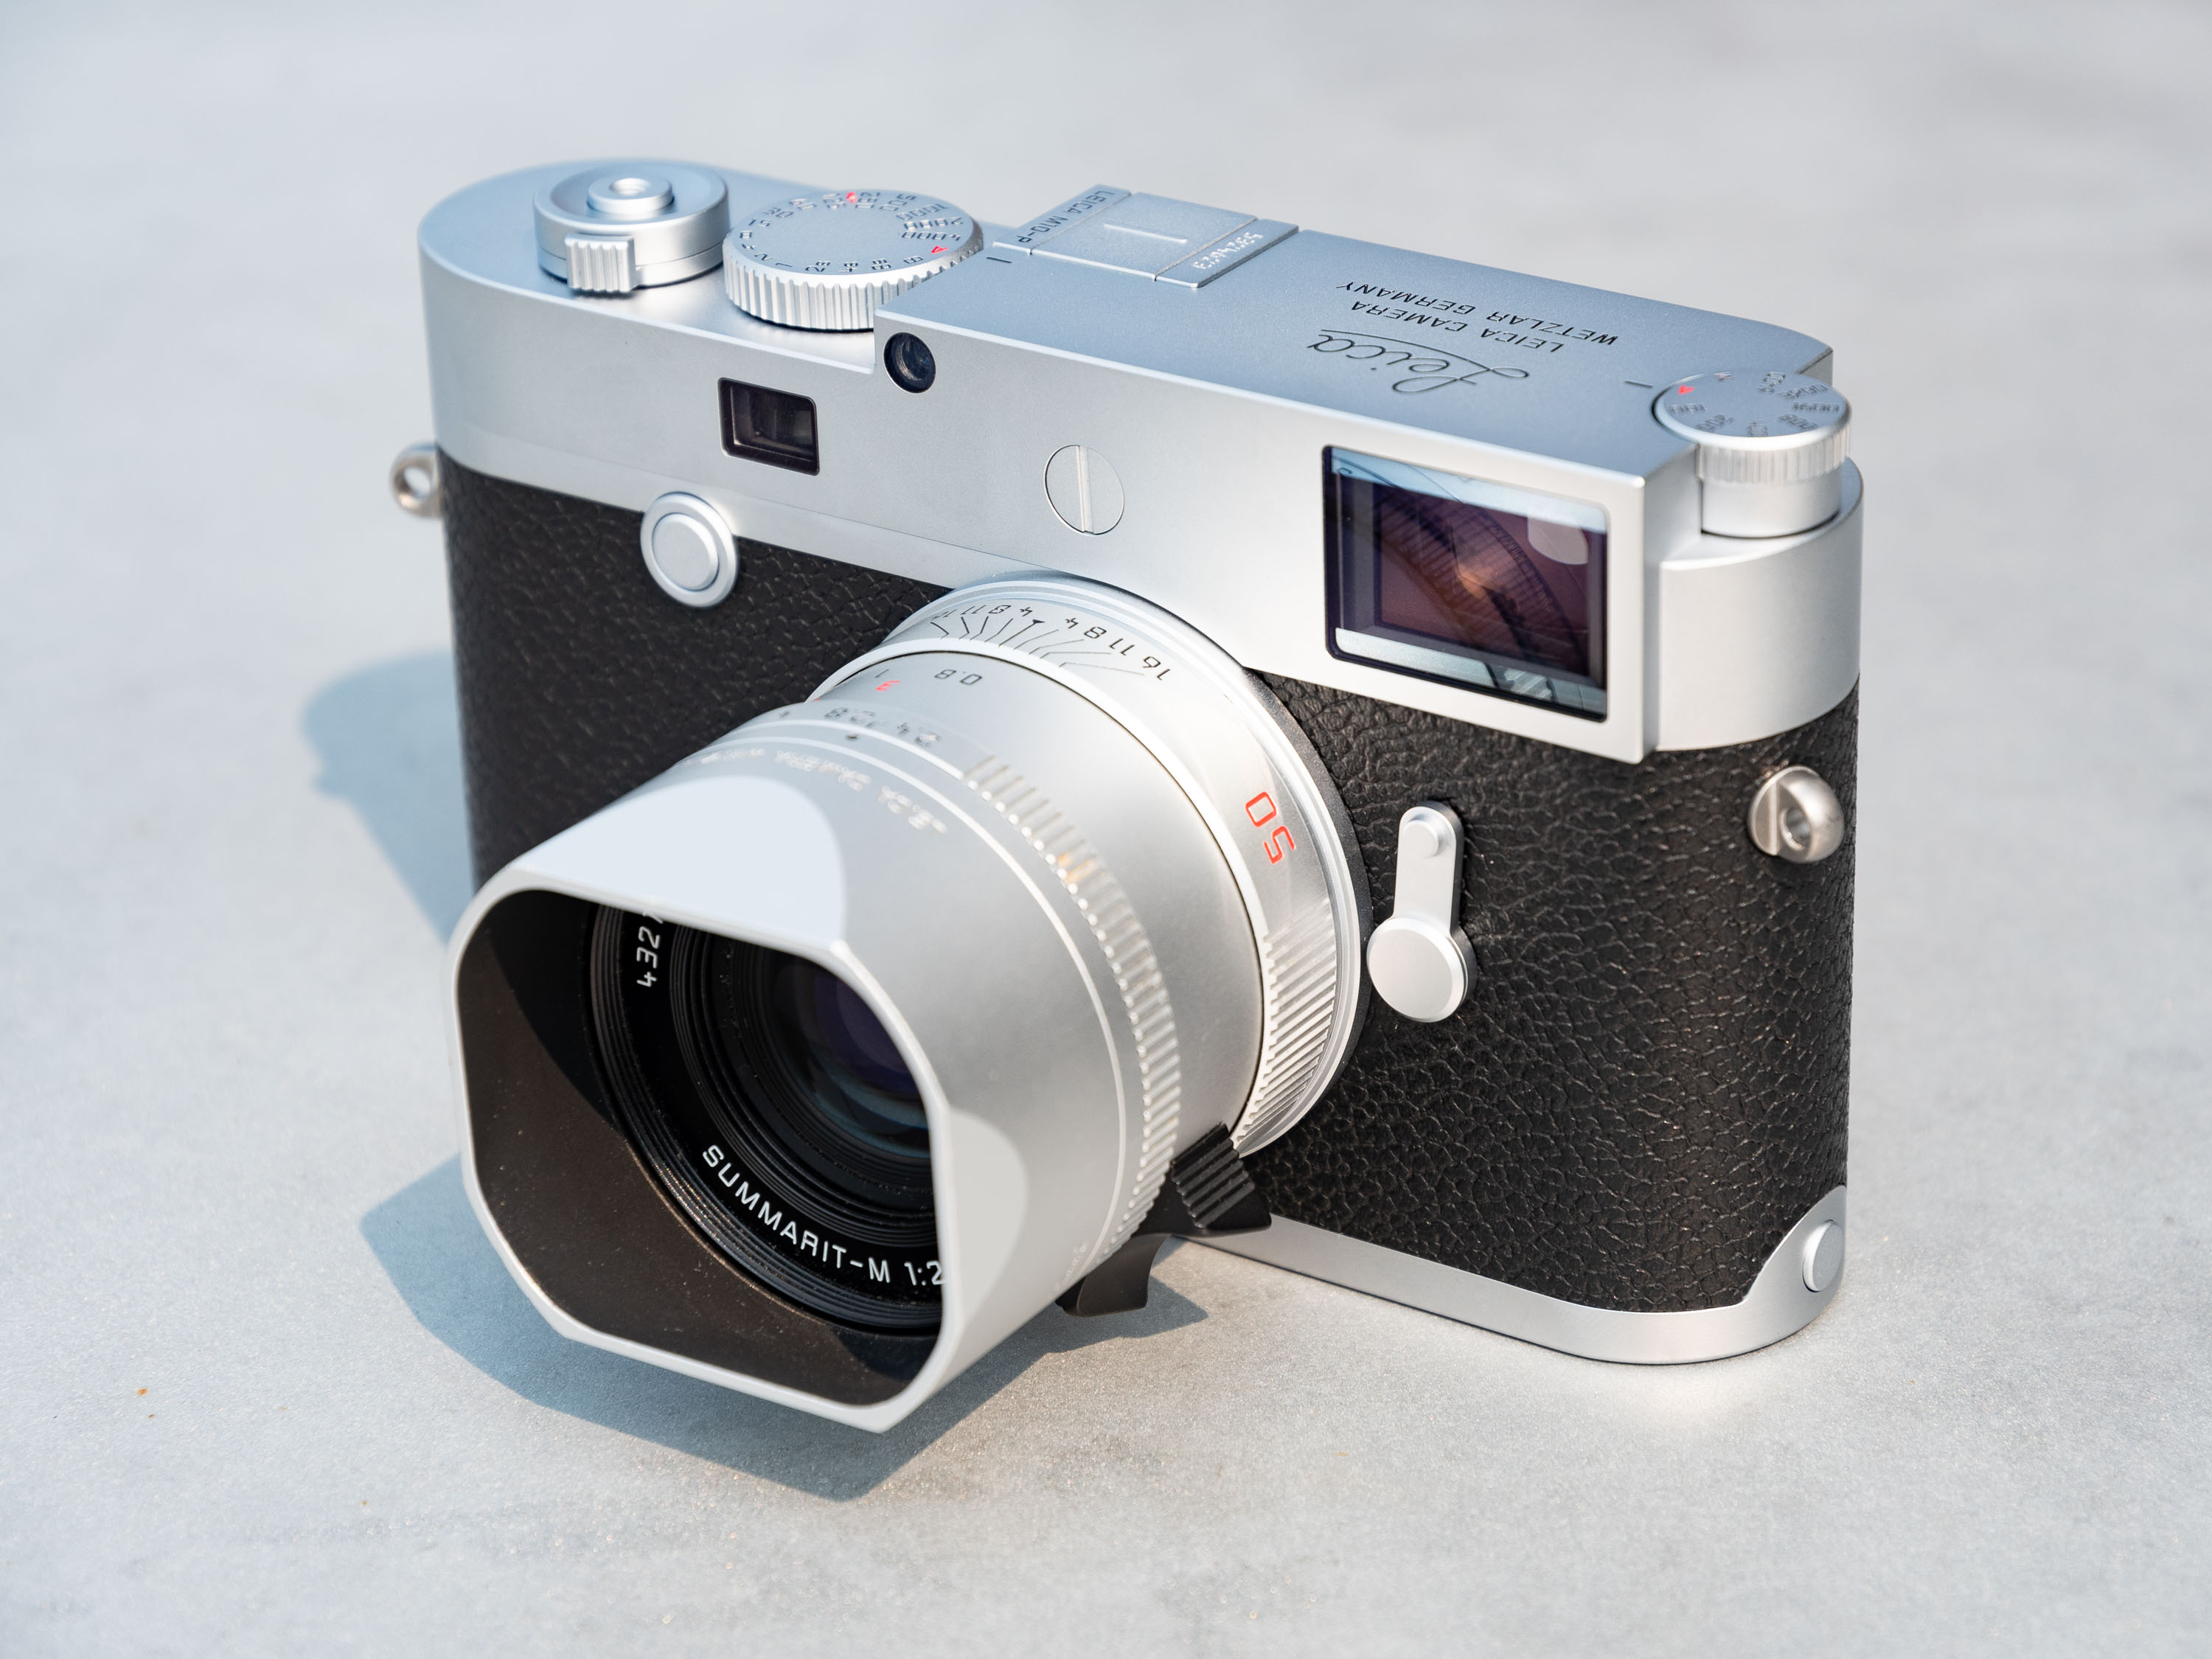 Hands-on with the new Leica M10-P | Best.Photography